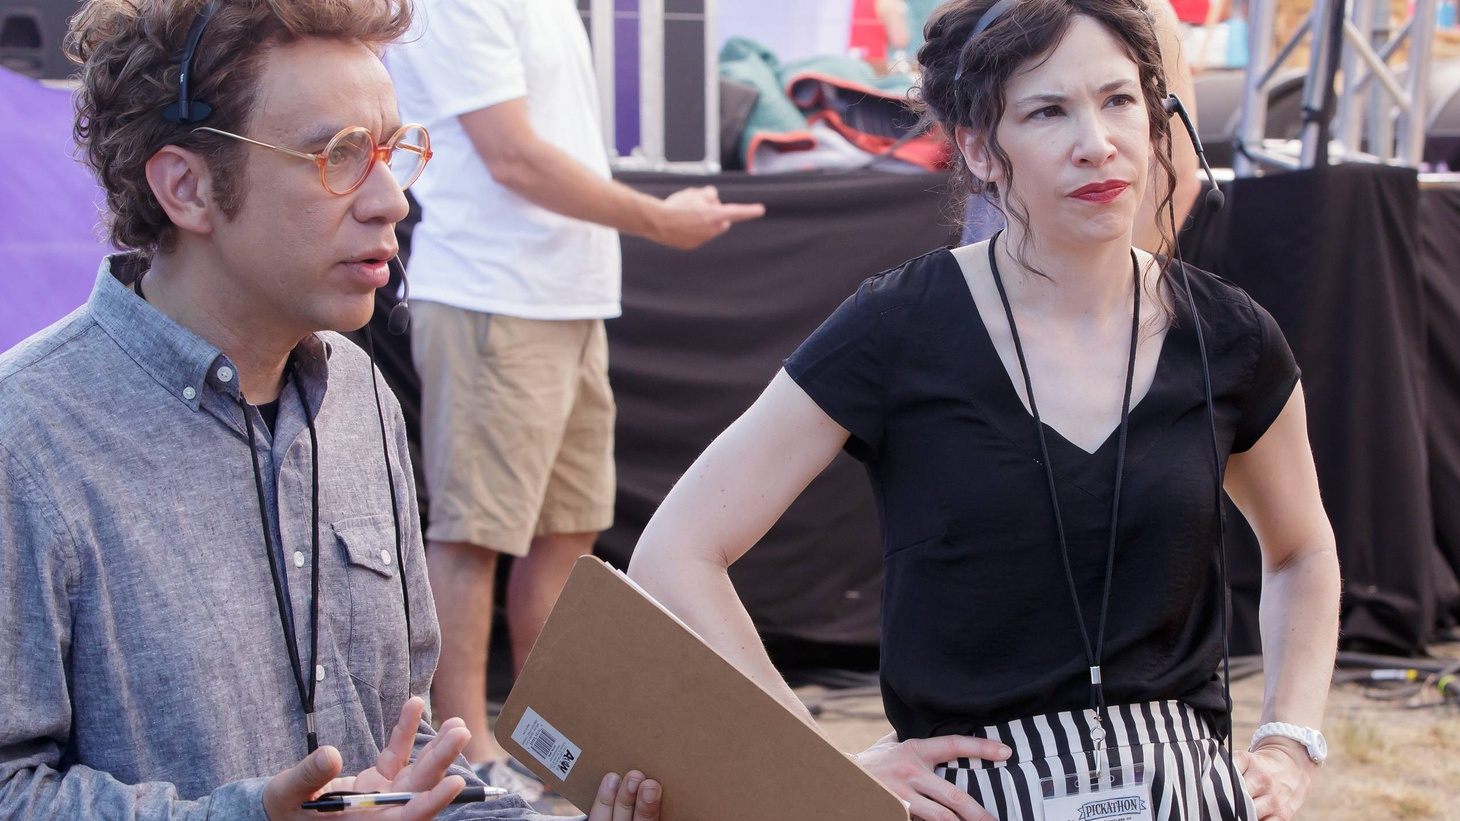 Musician/actor Carrie Brownstein joins Elvis Mitchell to discuss writing a memoir and kicking off the final season of Portlandia.